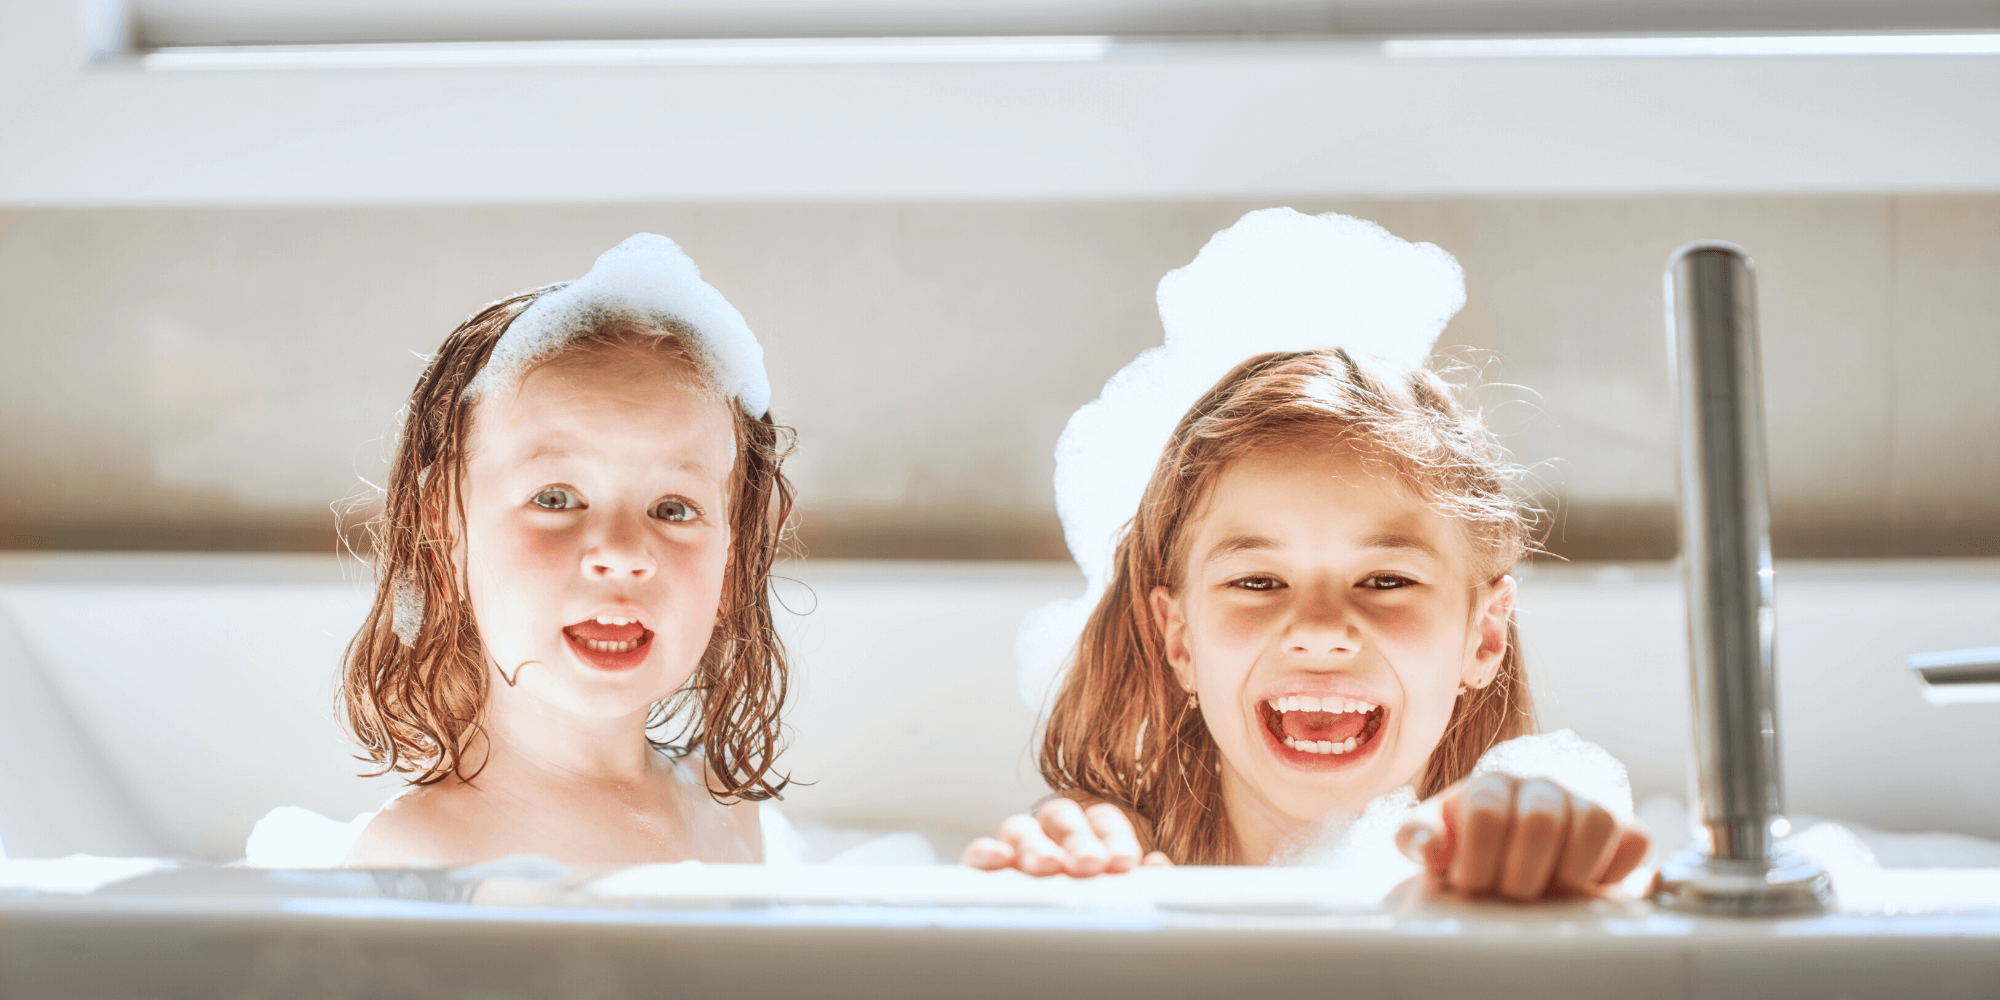 Little girls playing during bath time